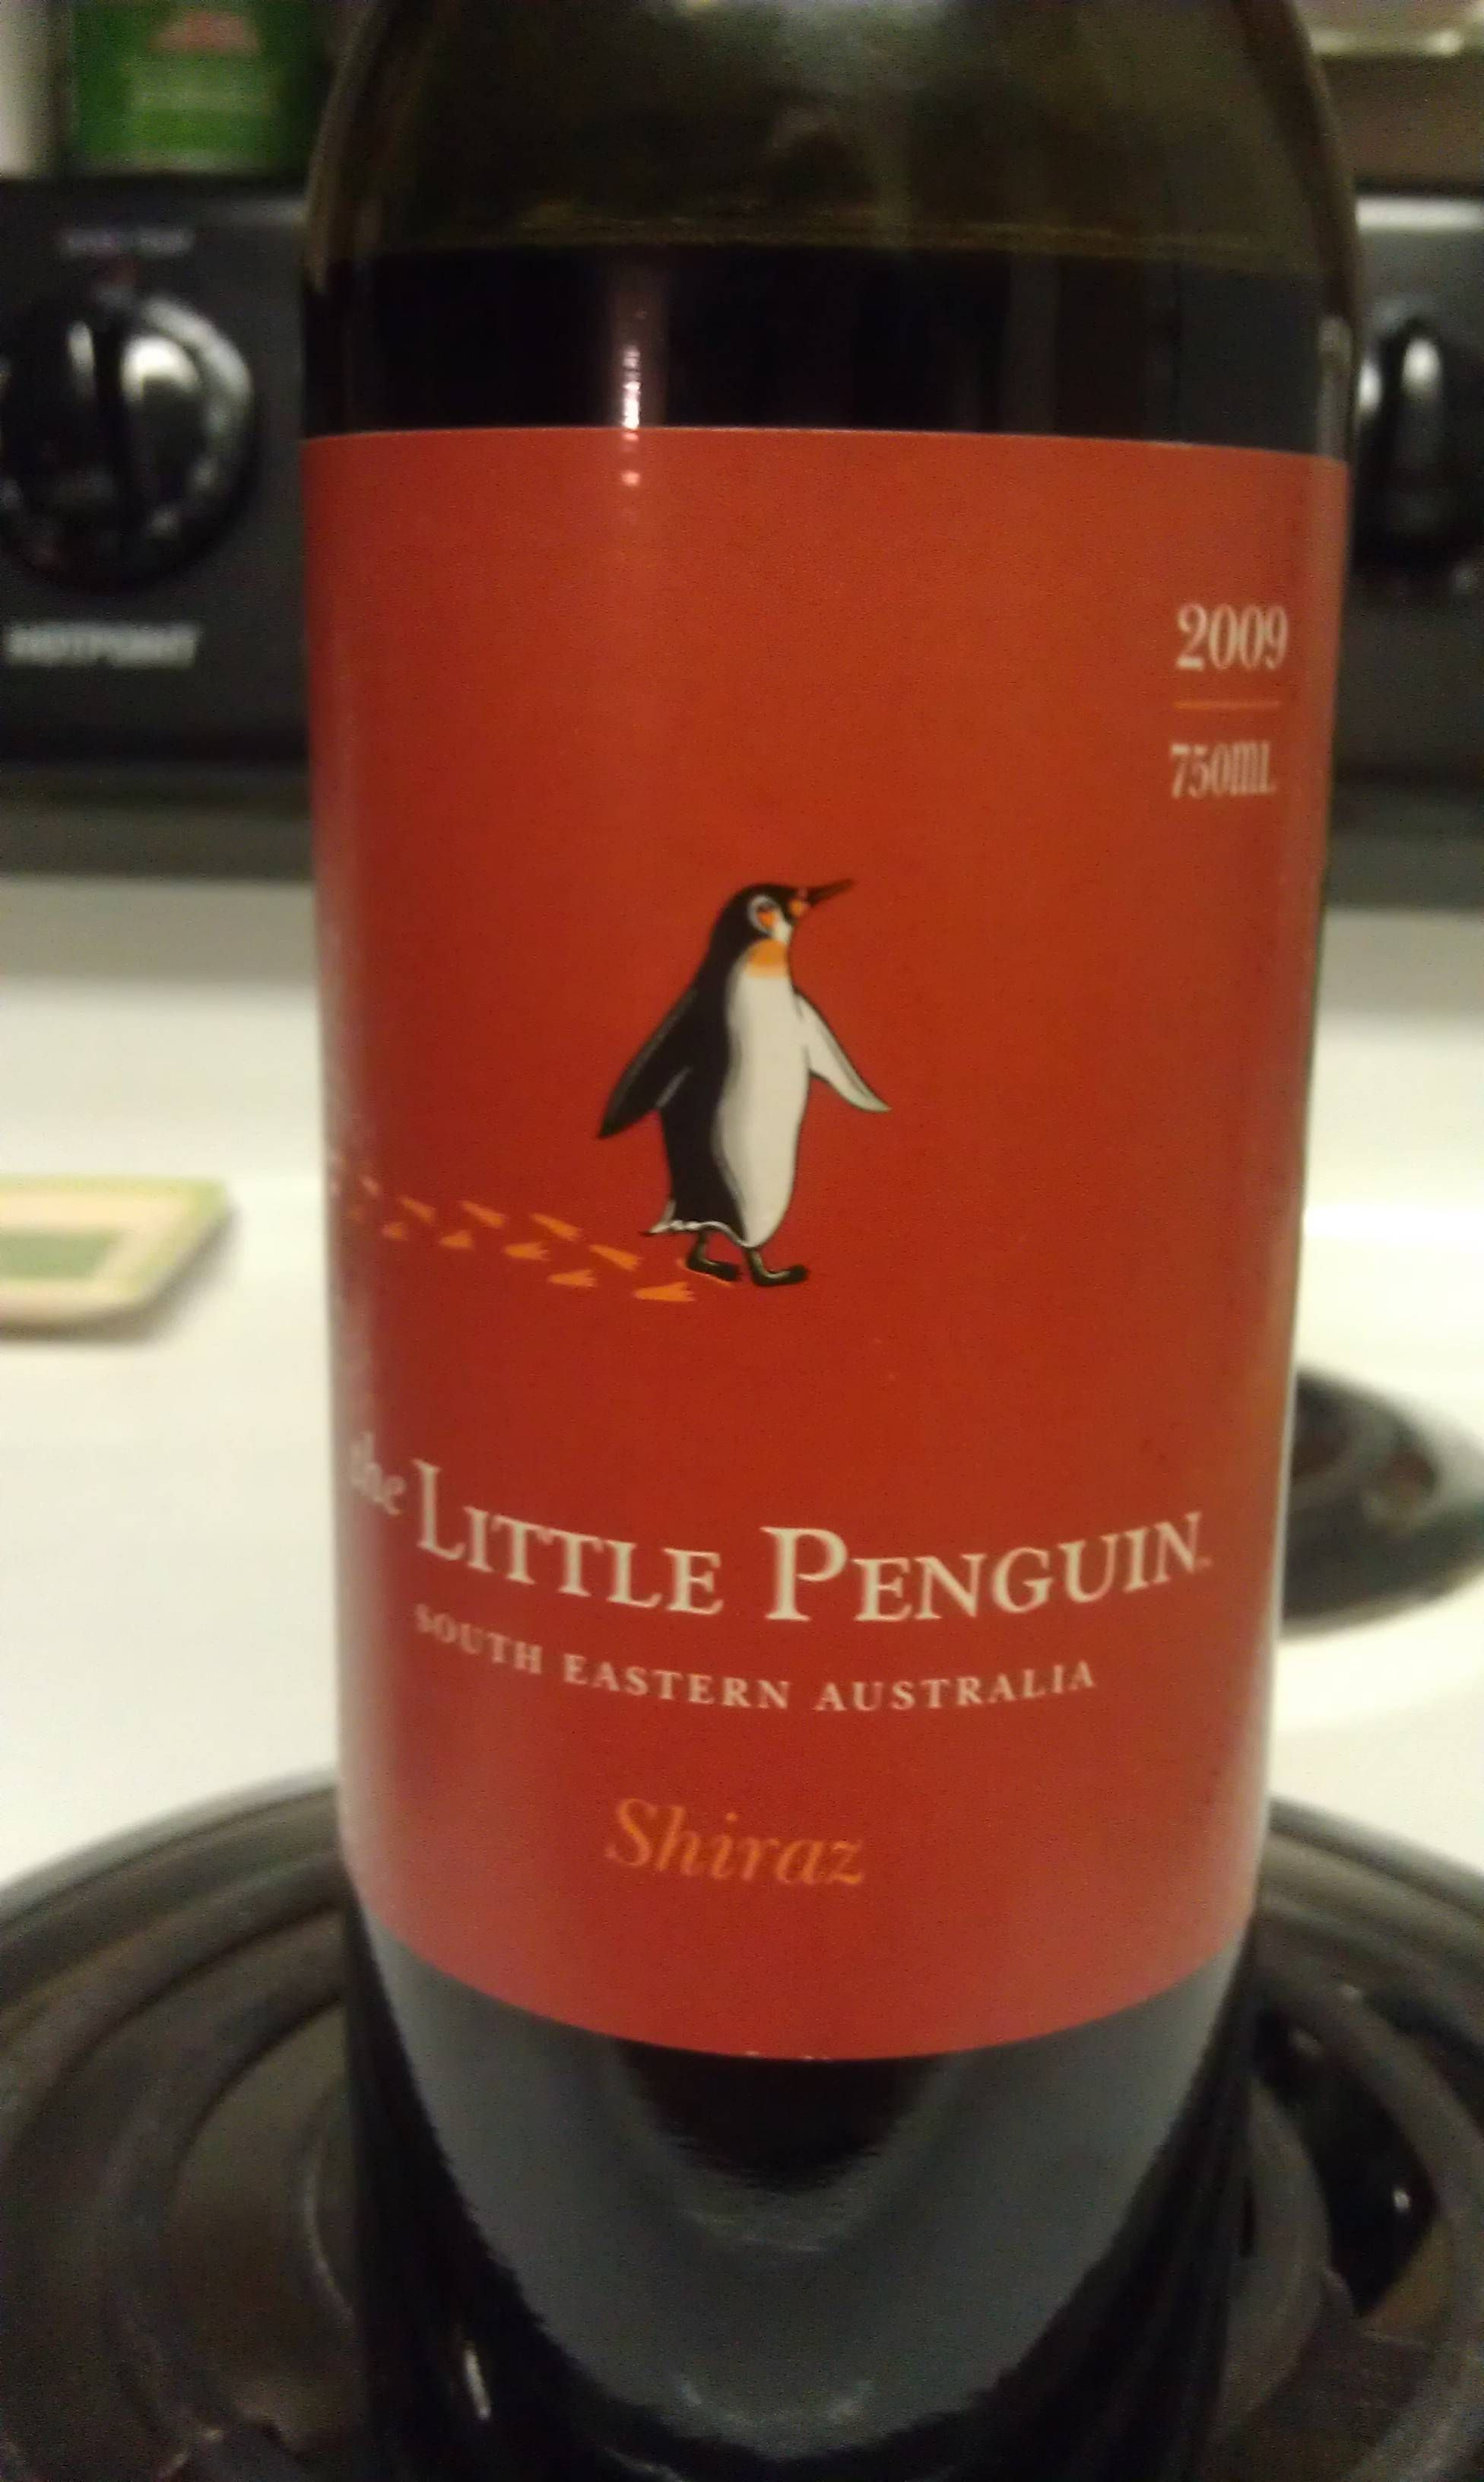 Little Penguin Shiraz Pd I M Such A Sucker For Anything With Penguins On It Lol Vino